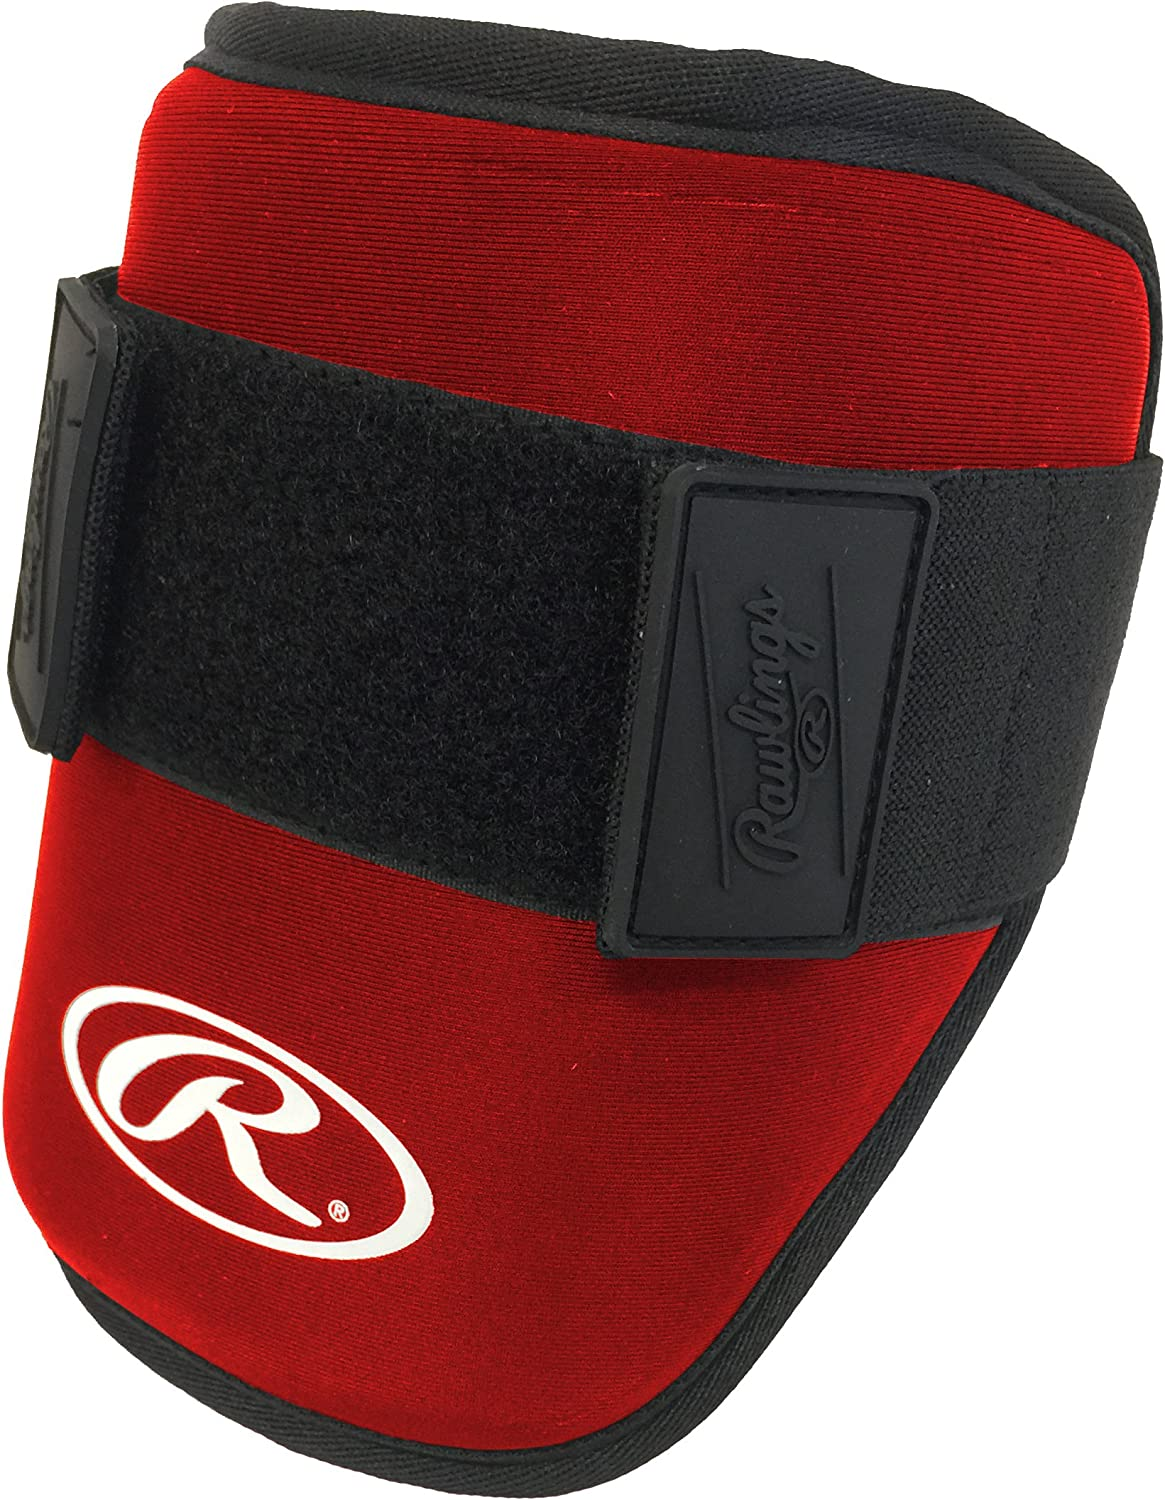 Rawlings Elbow Very popular Max 87% OFF Guard